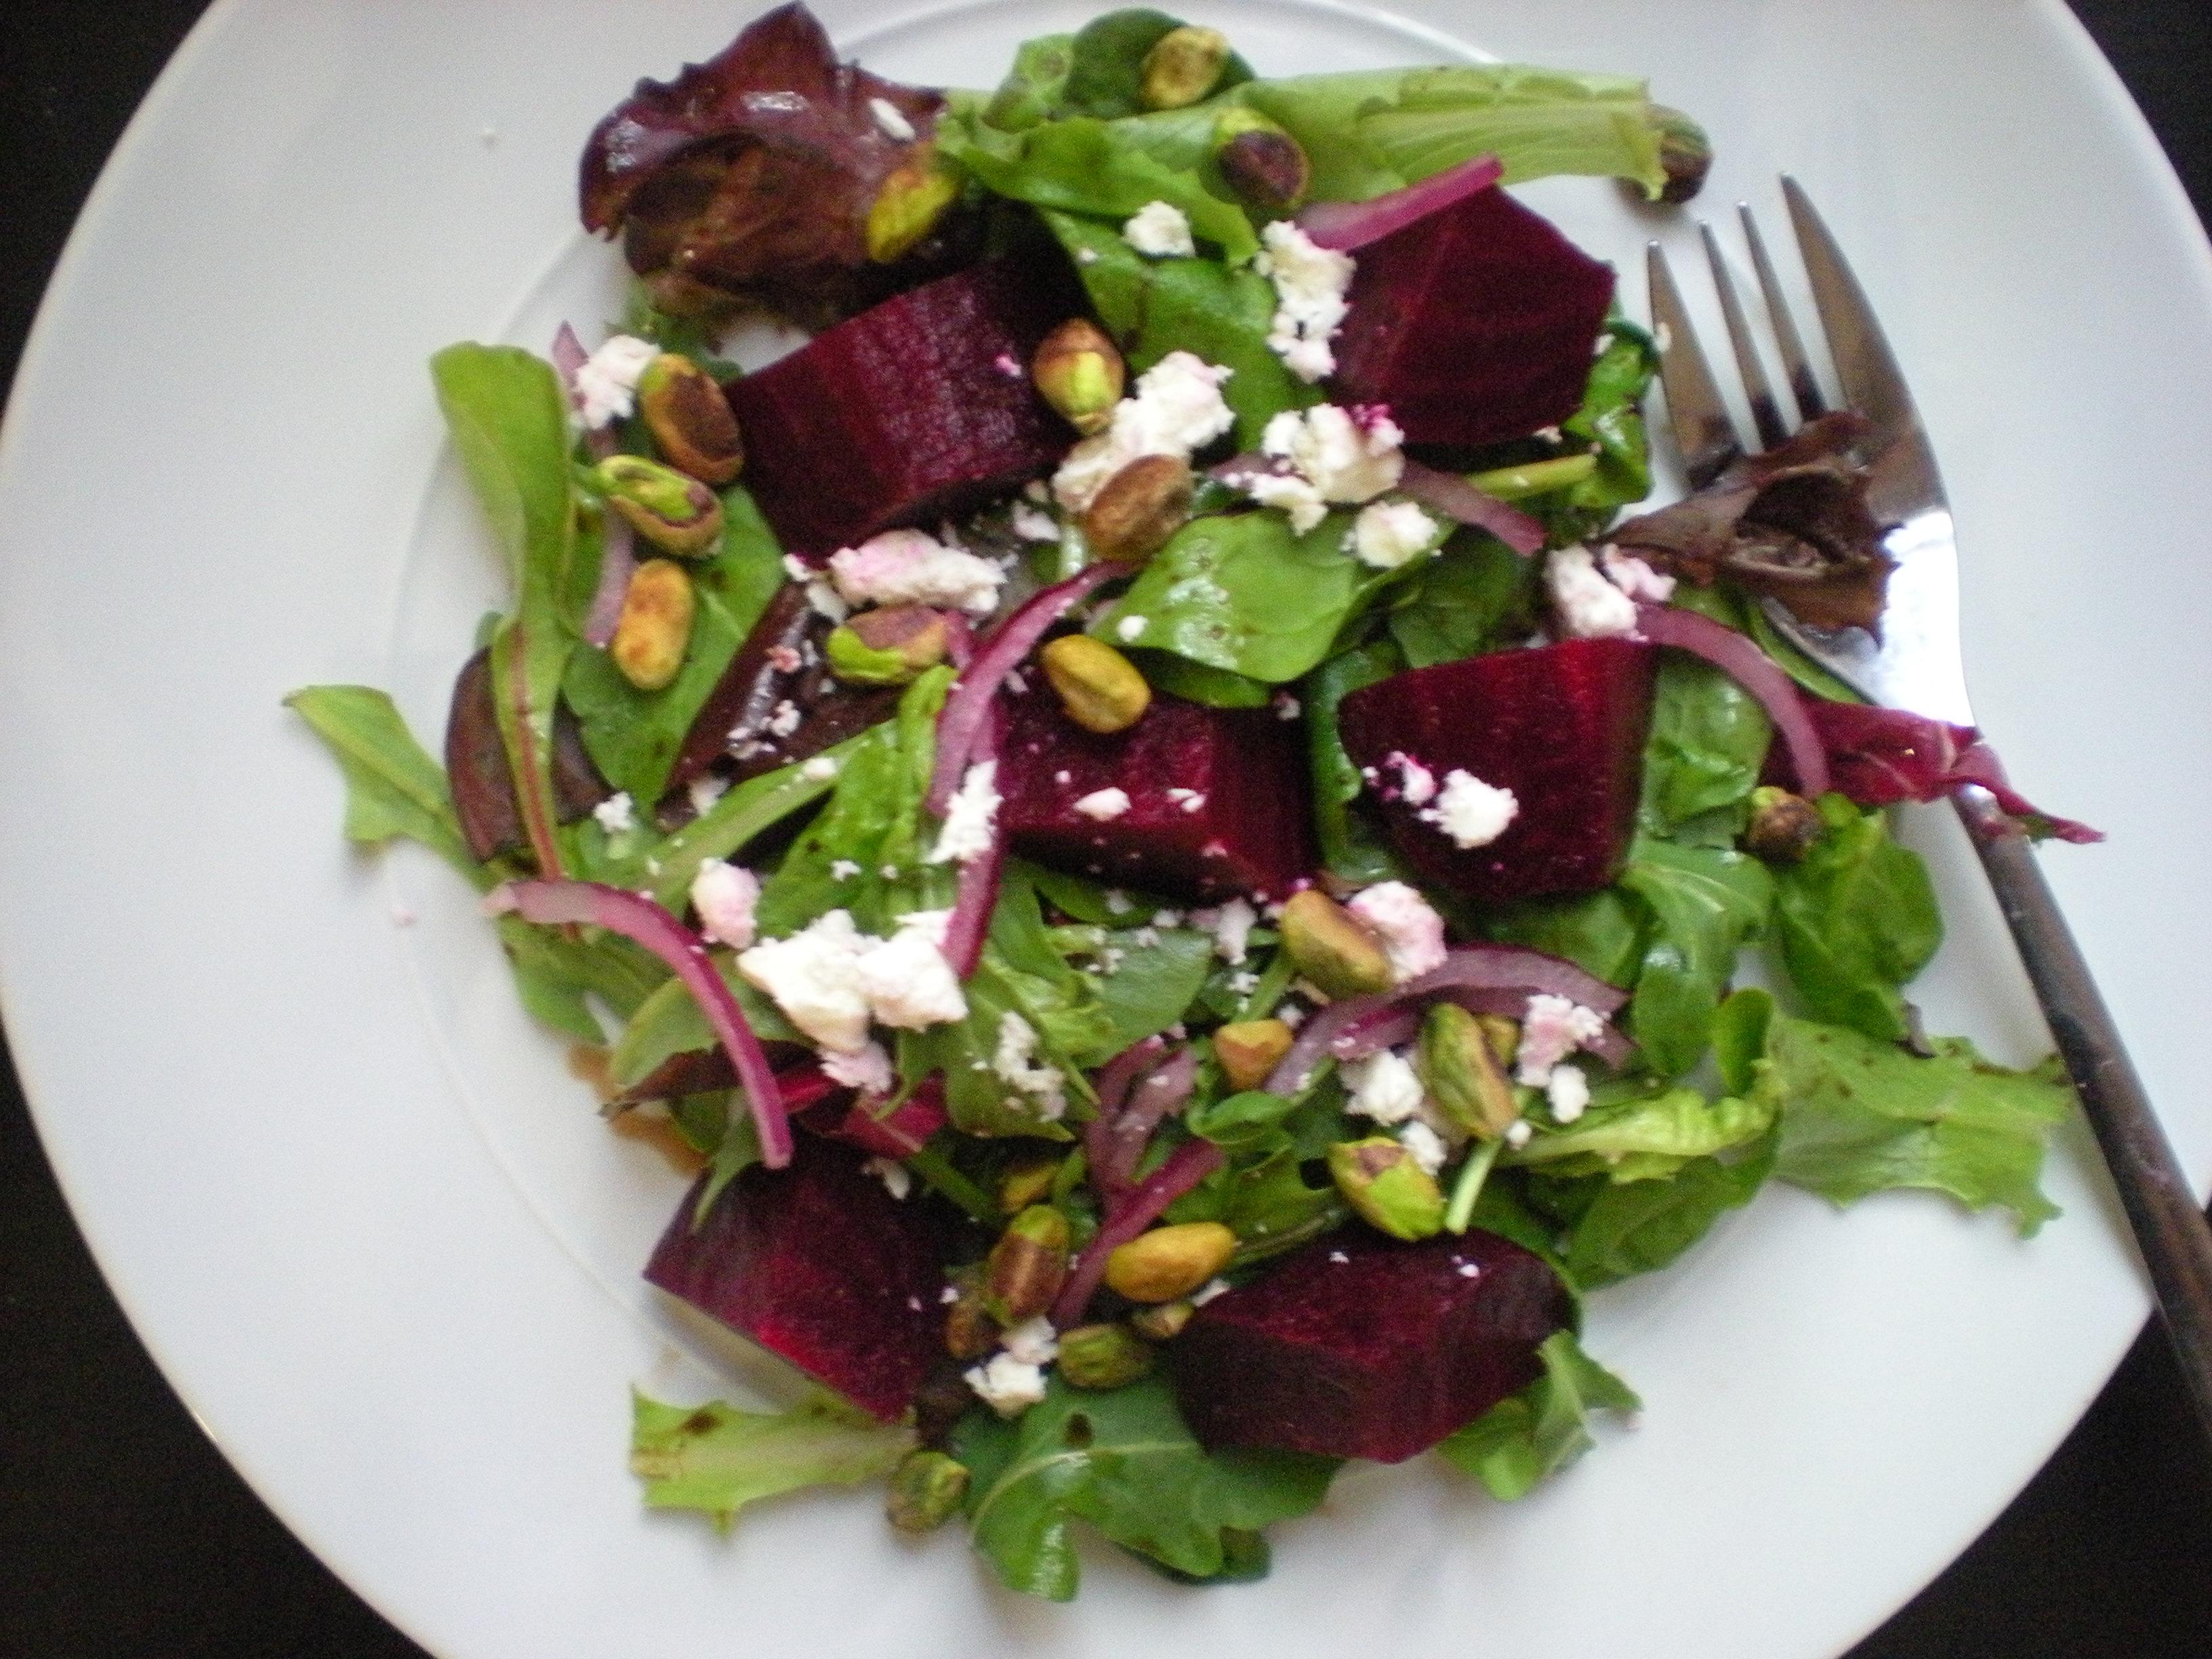 Balsamic Roasted Beet Salad with Pistachios and Feta